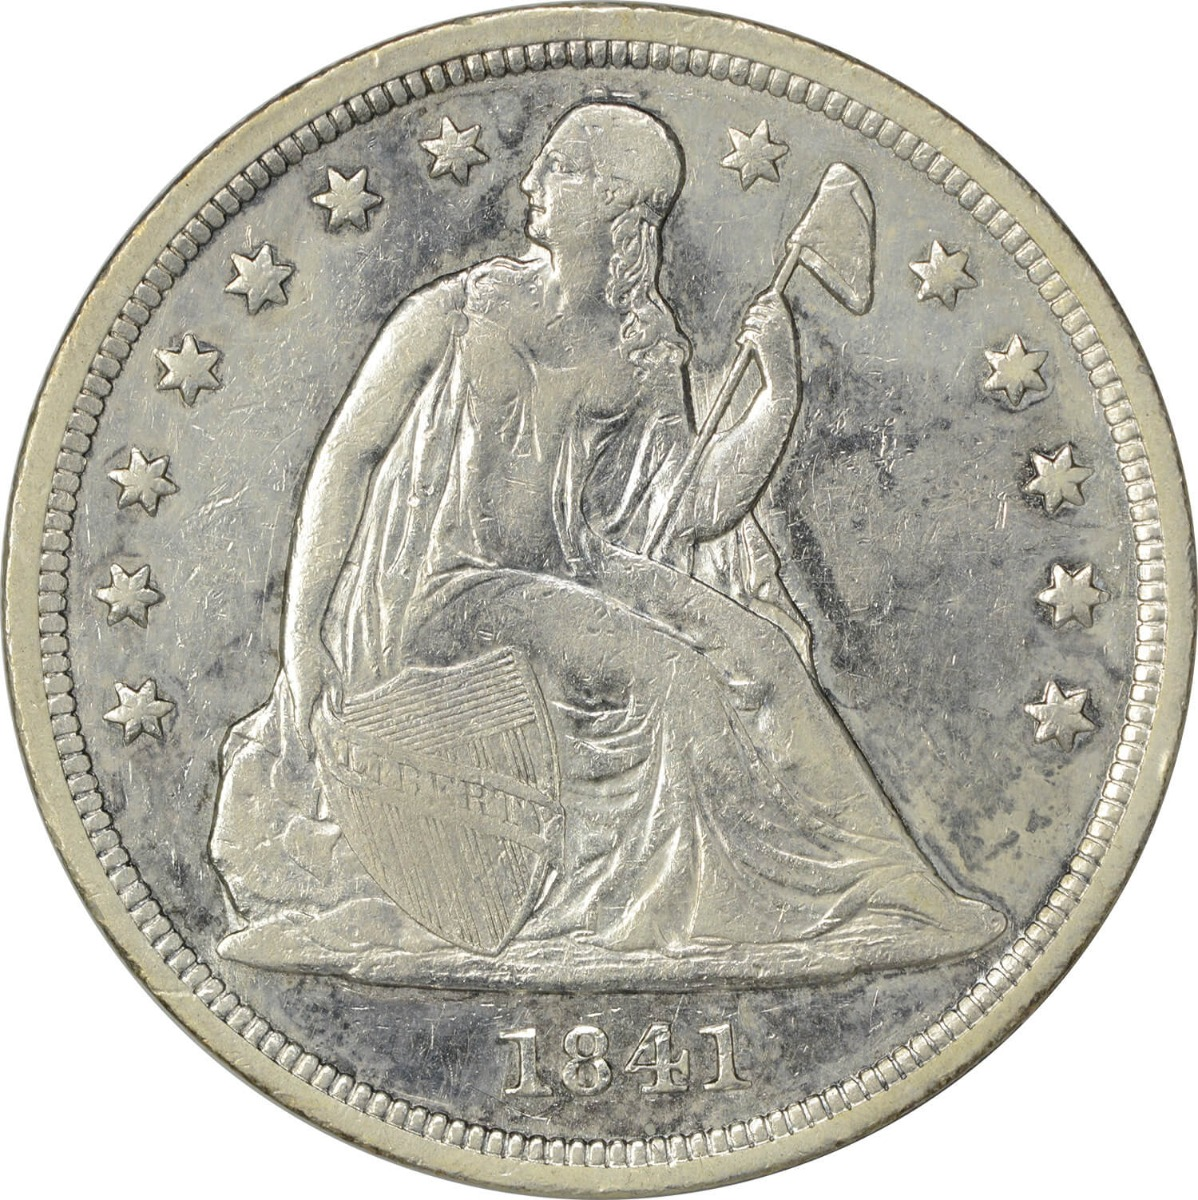 1841 Liberty Seated Silver Dollar EF Uncertified